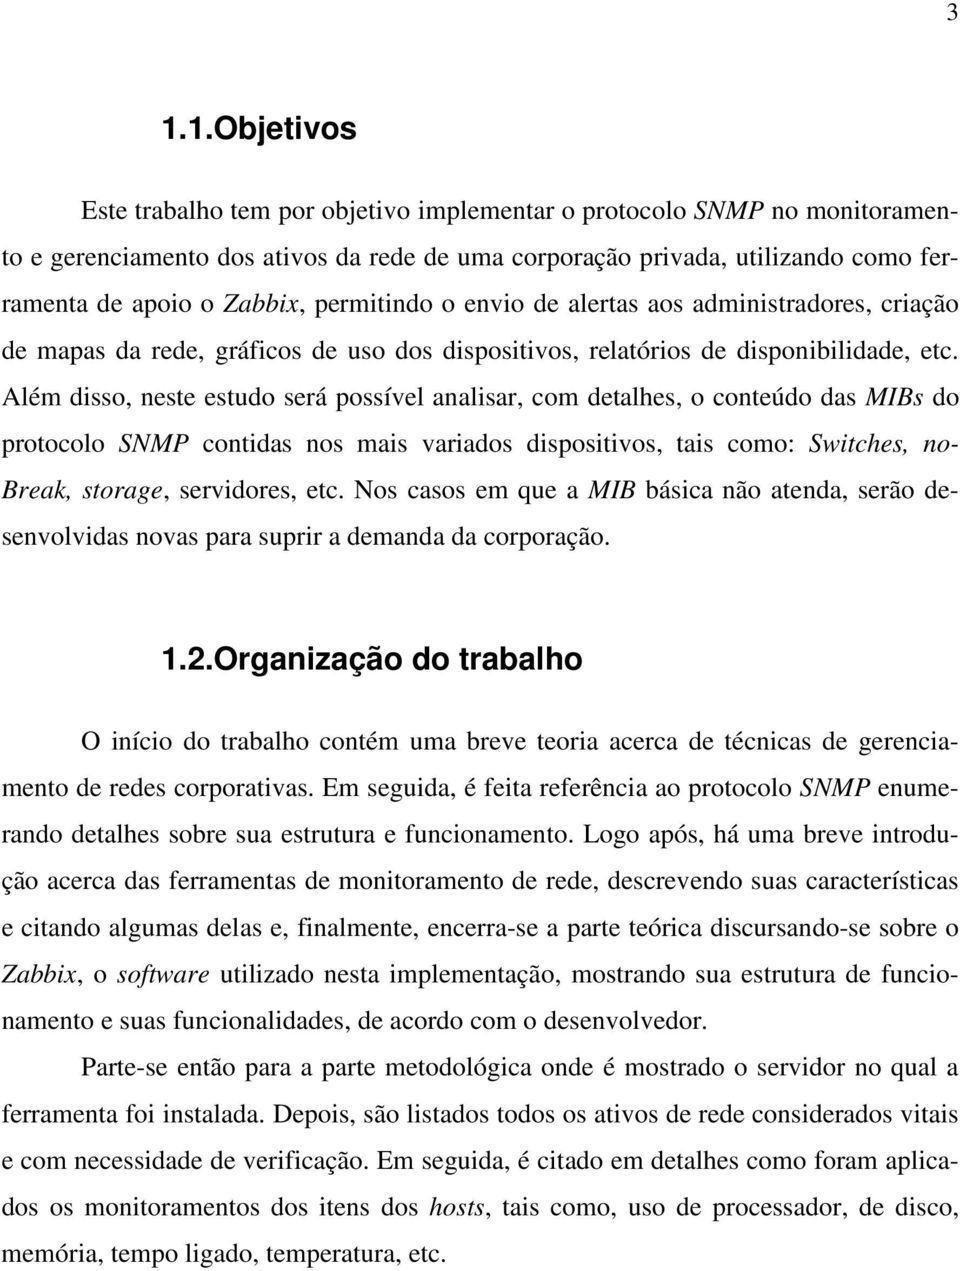 Além disso, neste estudo será possível analisar, com detalhes, o conteúdo das MIBs do protocolo SNMP contidas nos mais variados dispositivos, tais como: Switches, no- Break, storage, servidores, etc.